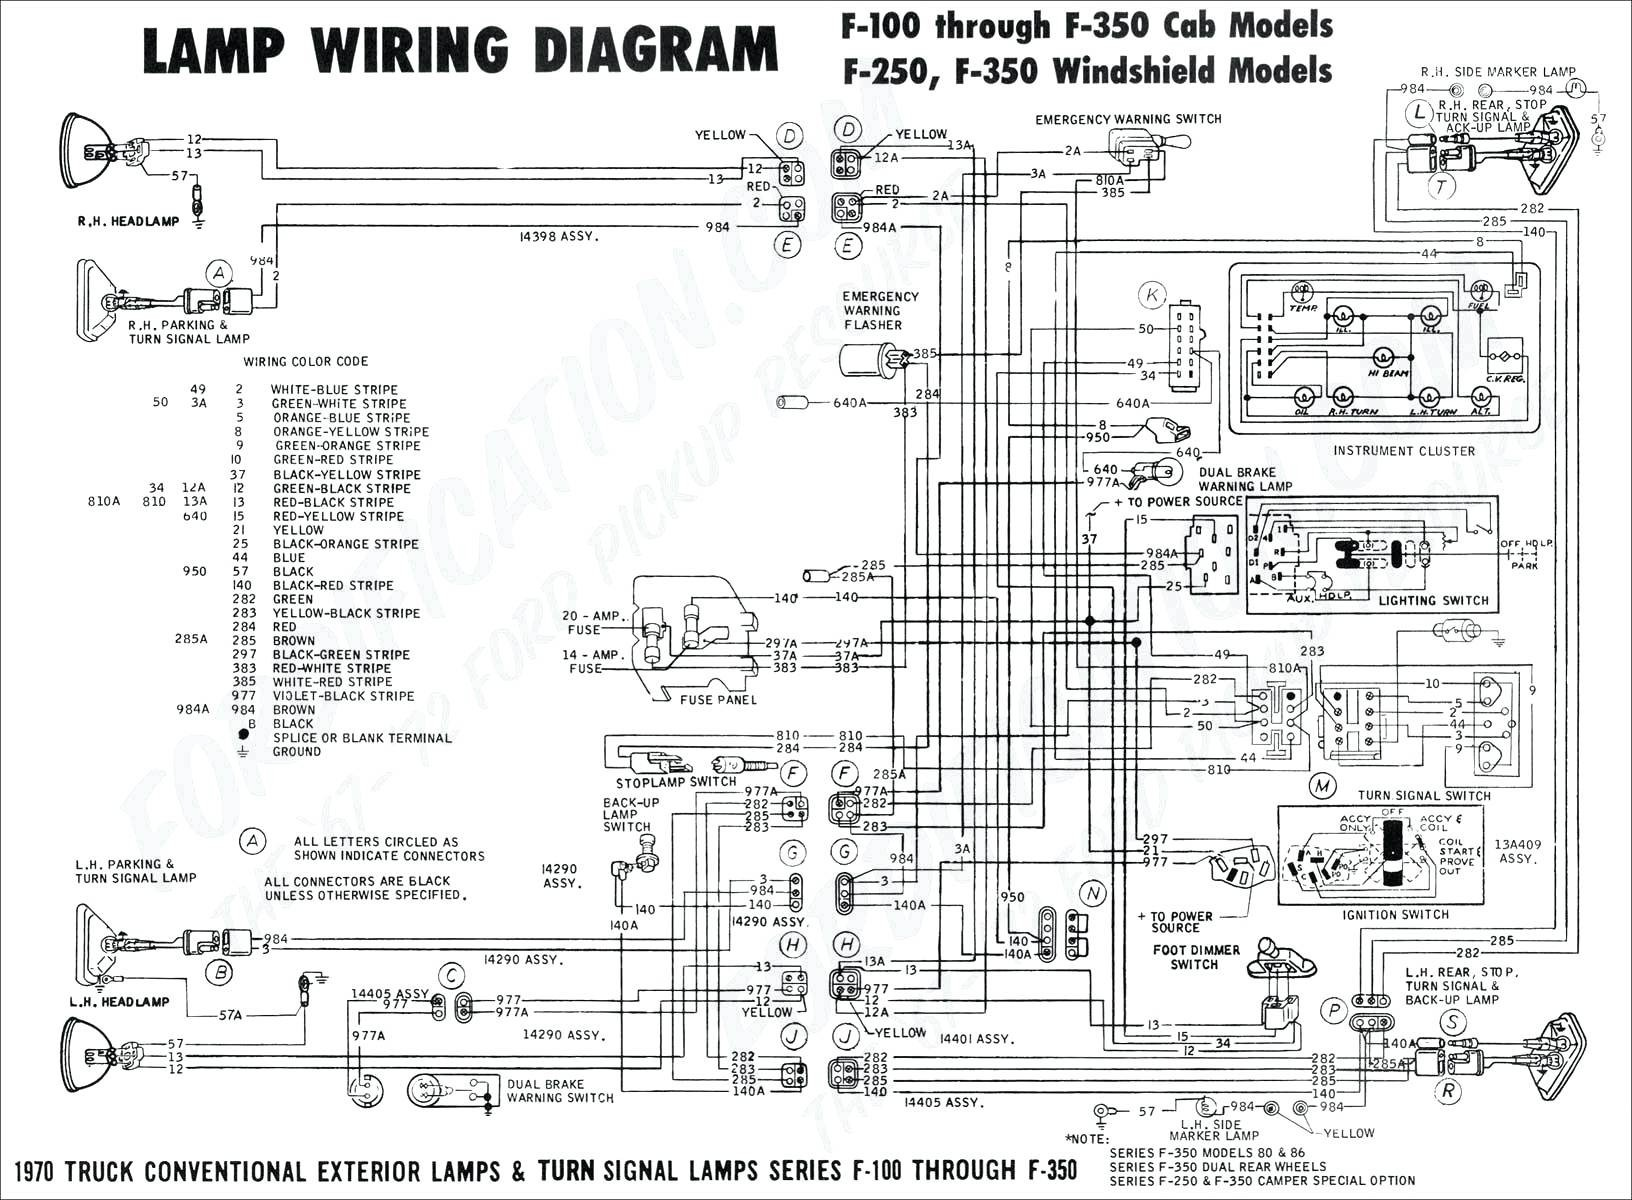 2001 ford Expedition Engine Diagram 1996 ford 7 3 Powerstroke Wiring Diagram  Wiring Diagrams • Of